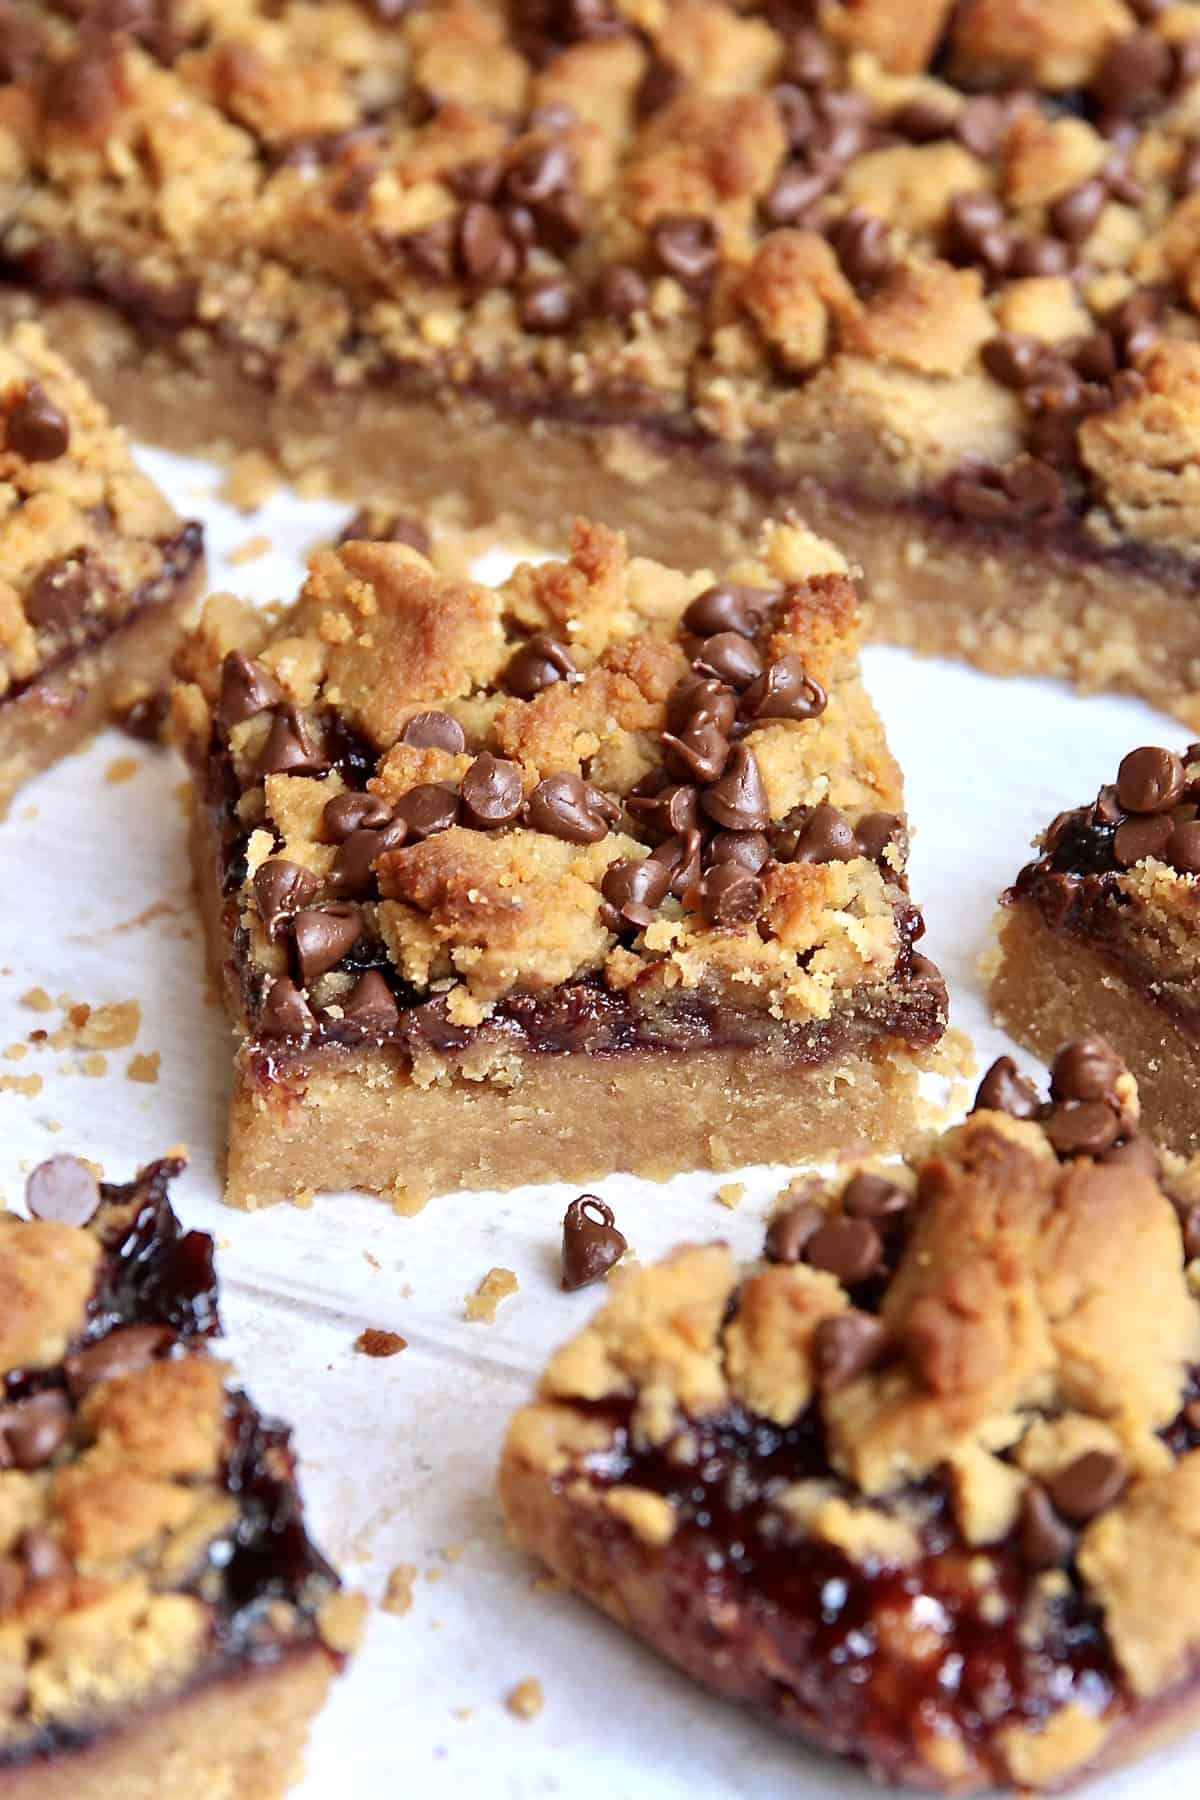 Peanut Butter and Jelly Bars with honey & chocolate chips